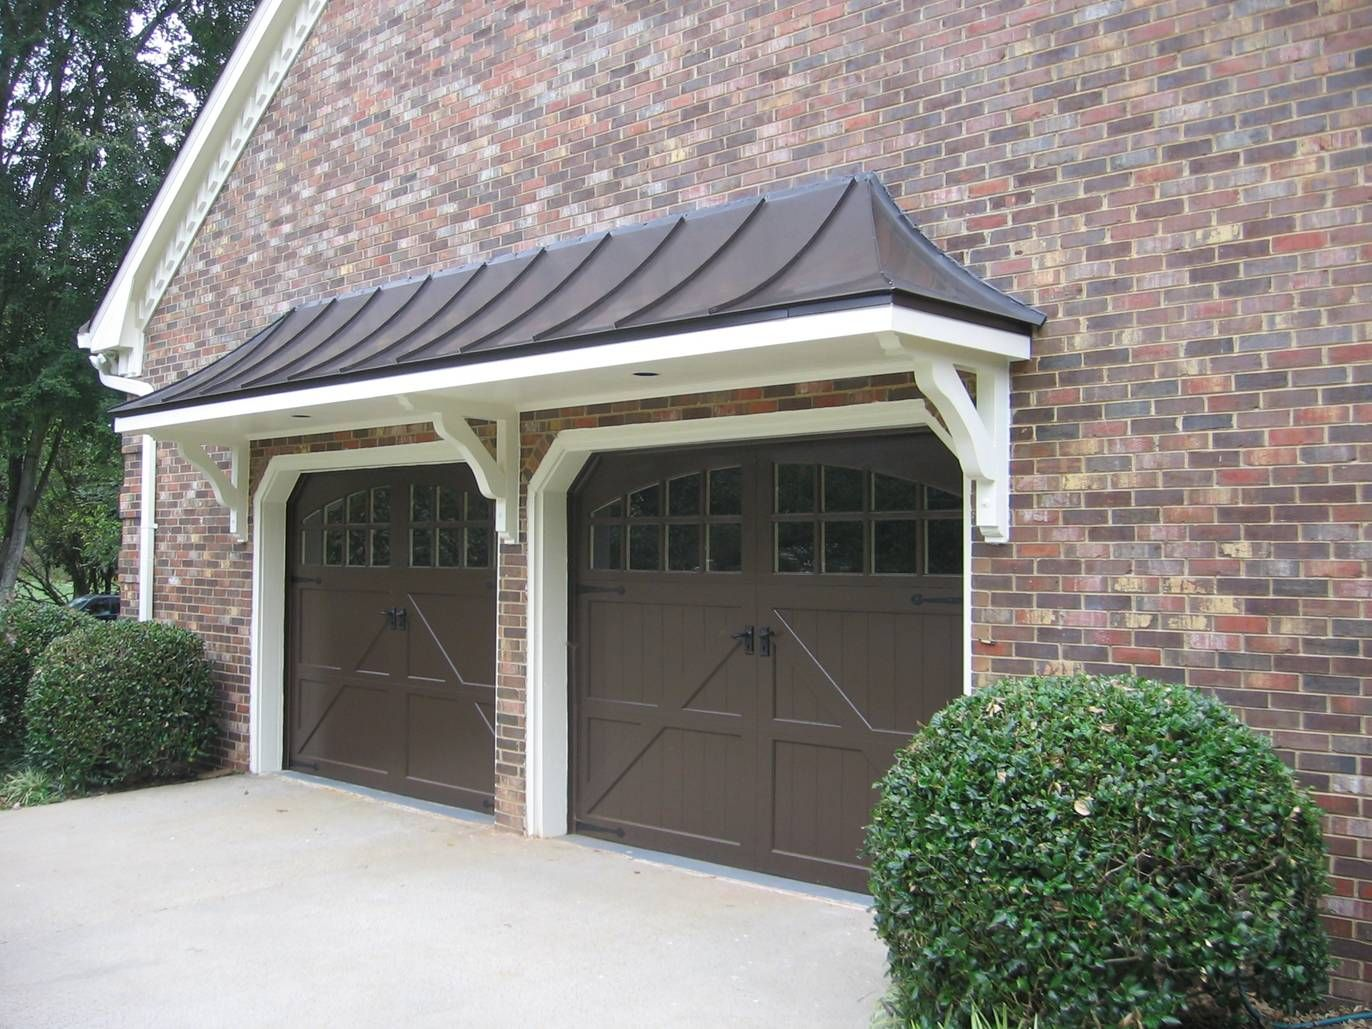 Merveilleux Metal Roof Bracket Portico Over Double Garage Doors. Designed And Built By  Georgia Front Porch.